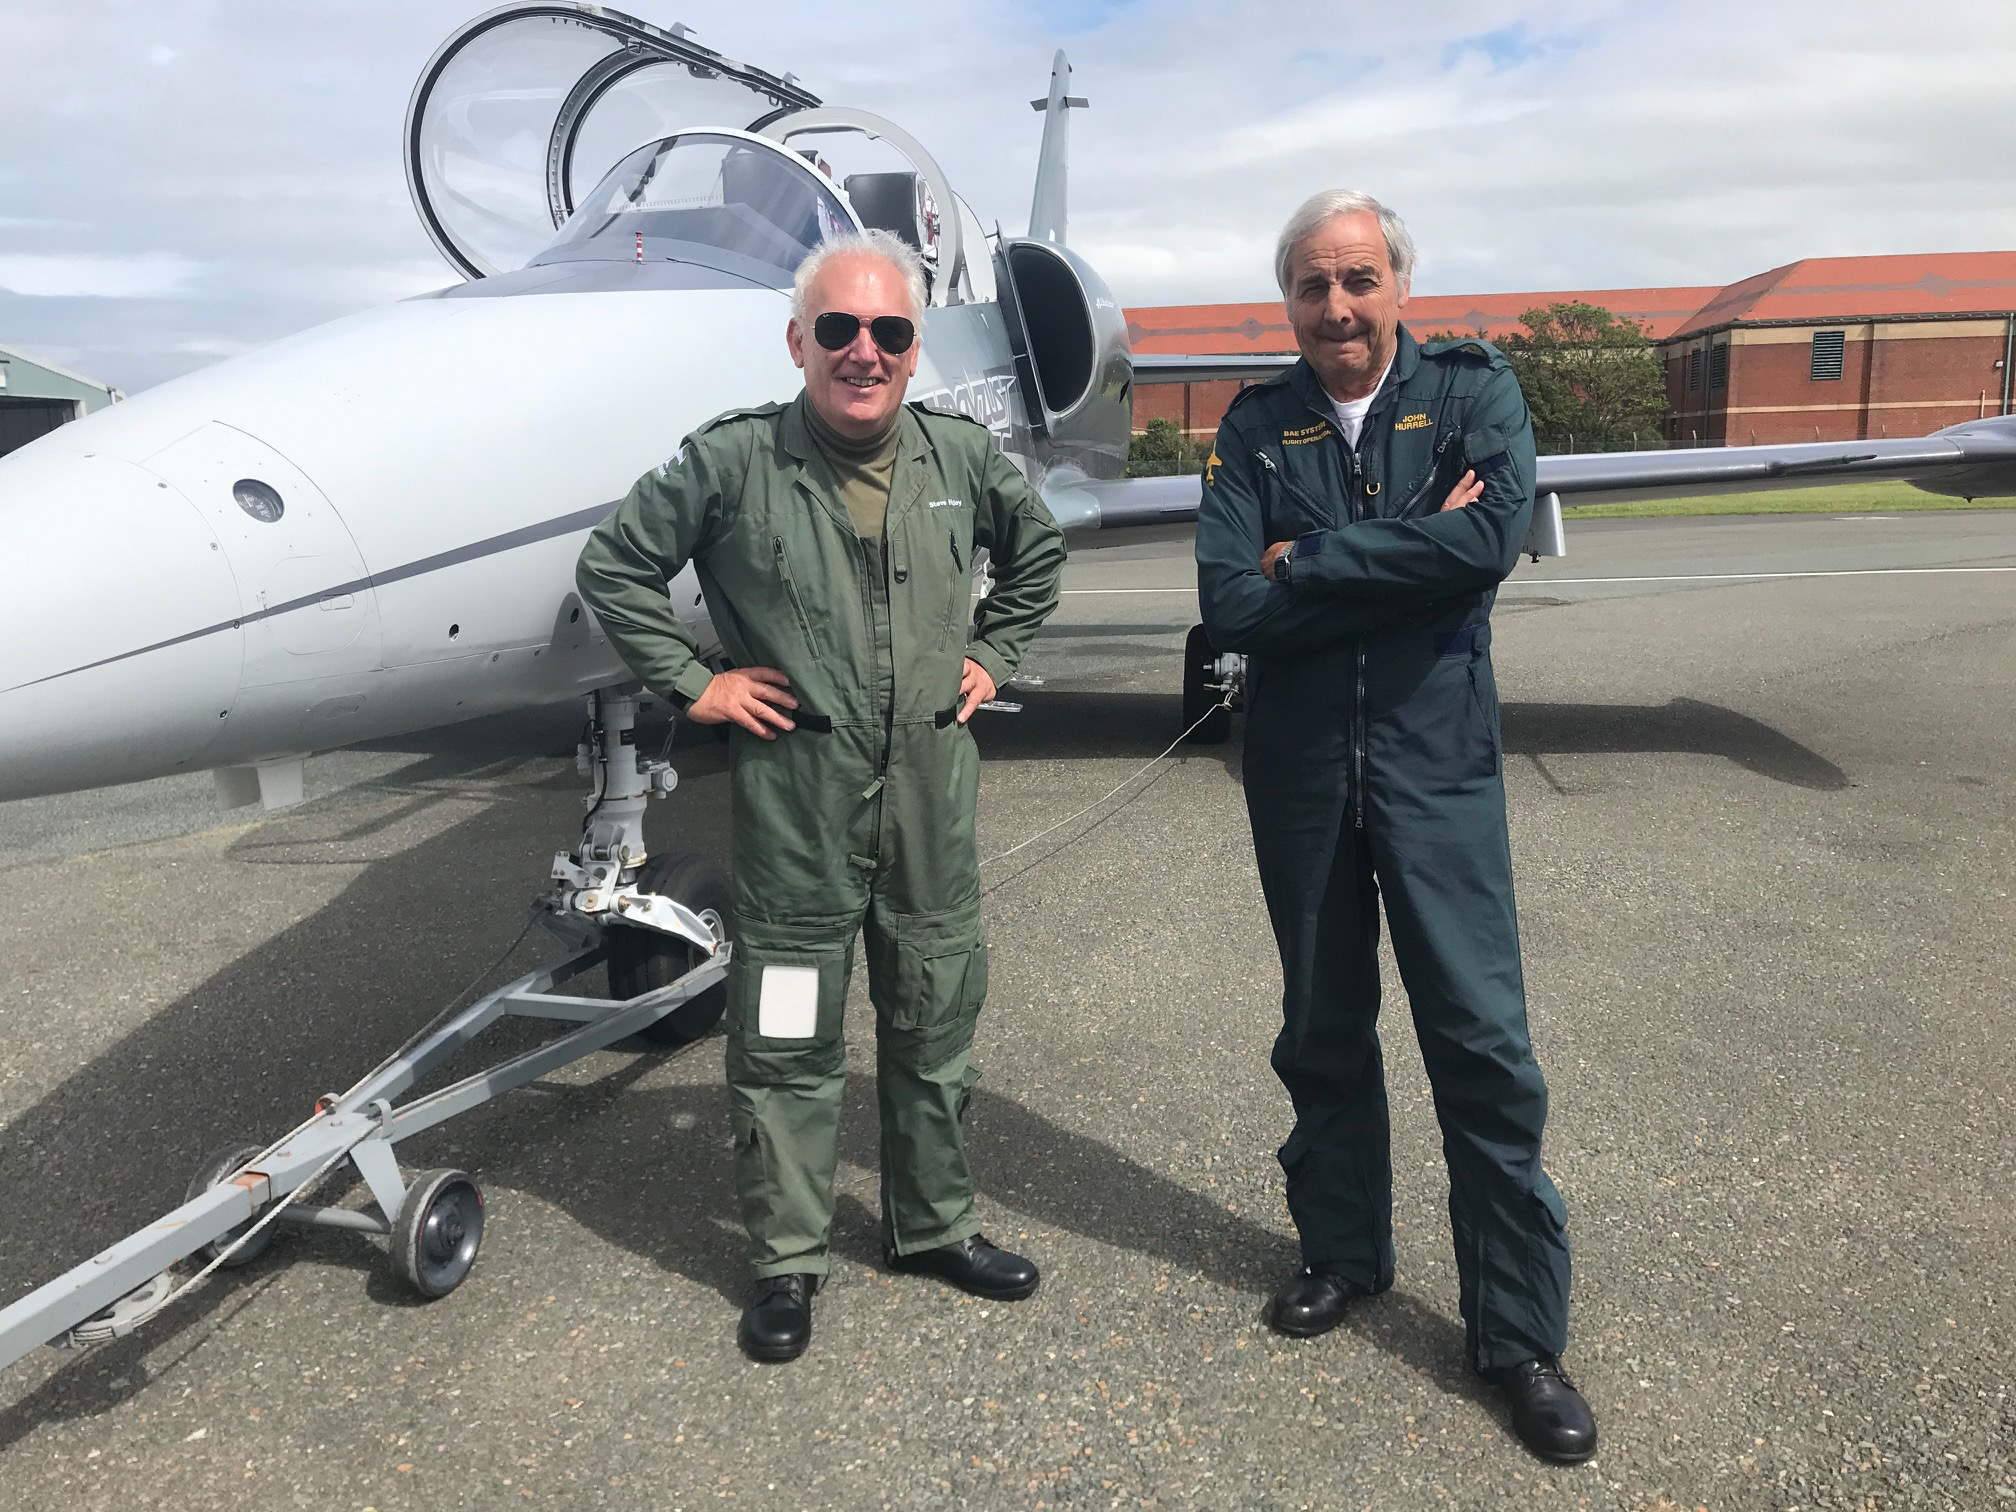 BLACKPOOL AIRPORT WELCOMES L-39 JET AS NEW TENANT